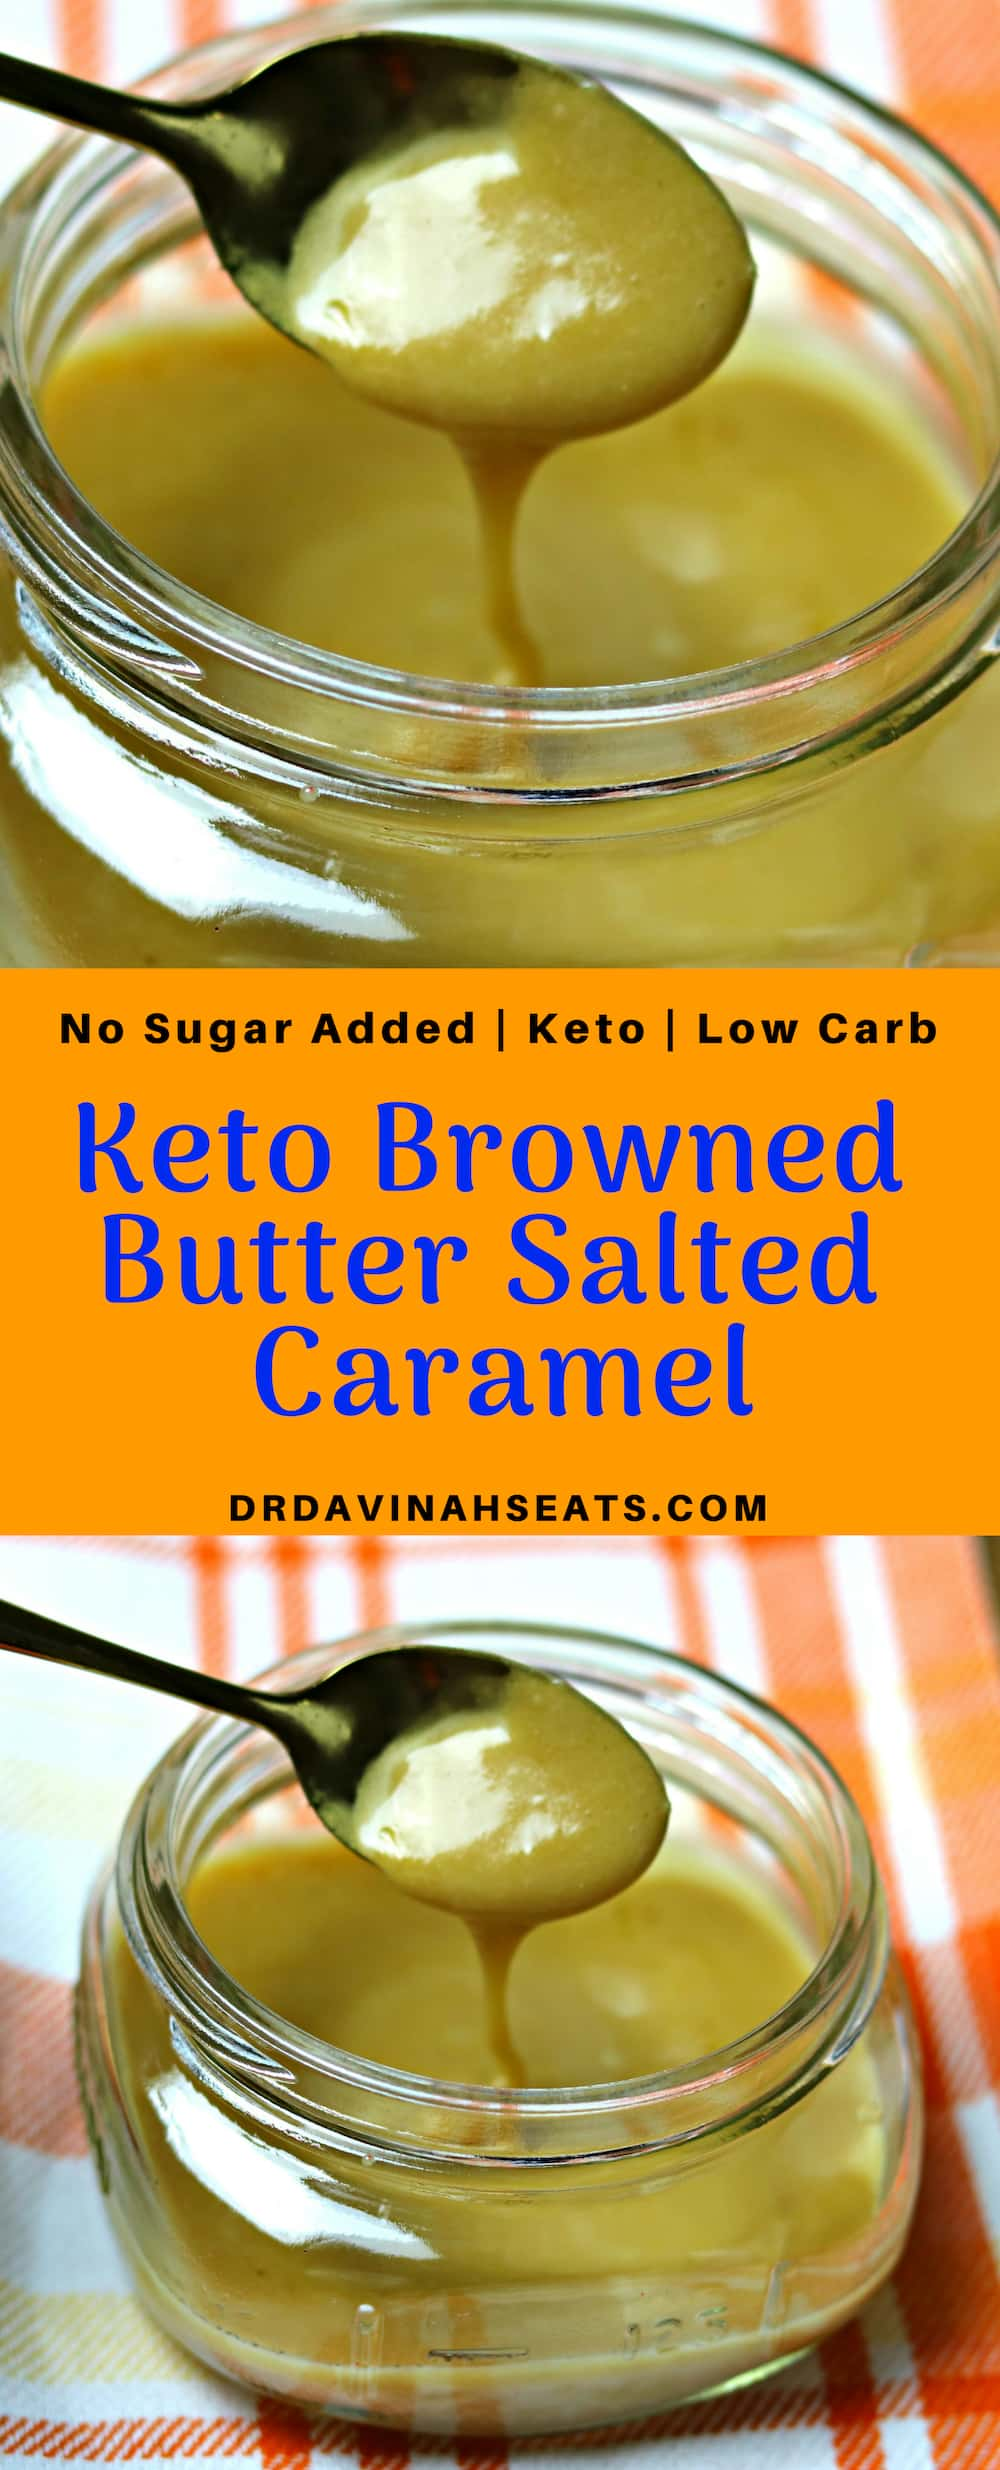 A Pinterest image for Keto Browned Butter Salted Caramel